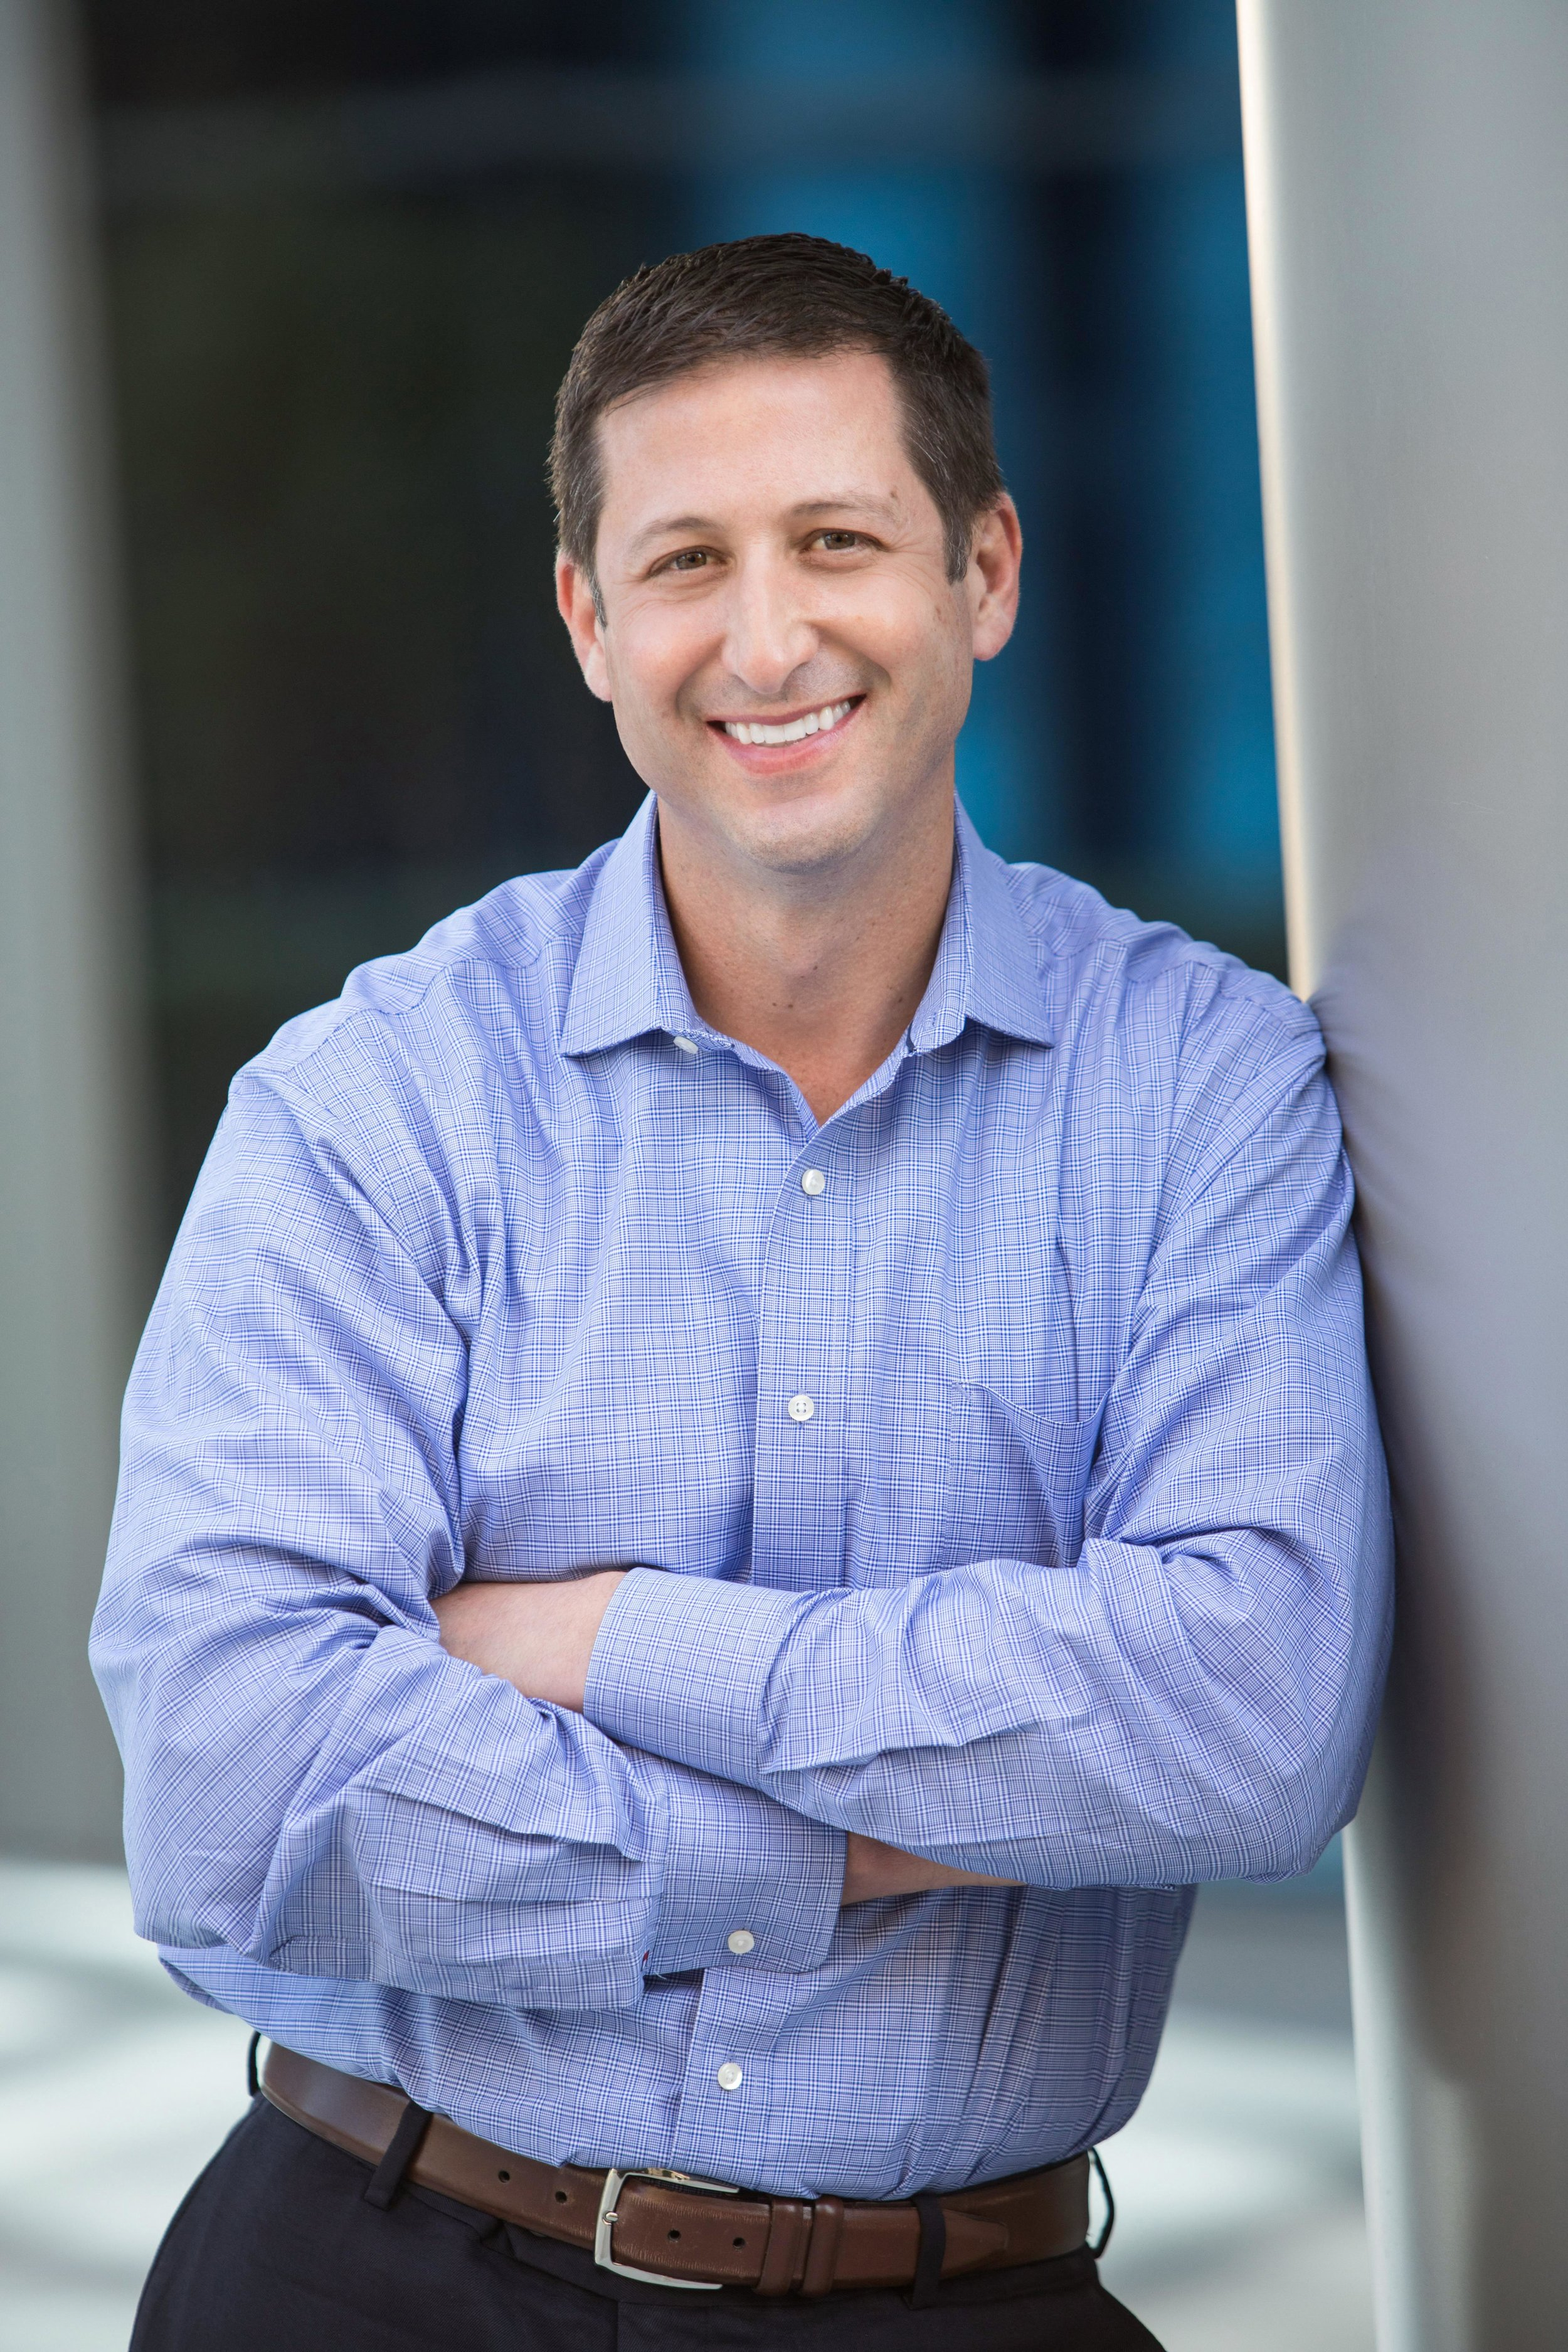 Synoptek IT professional corporate headshot and team photography for men